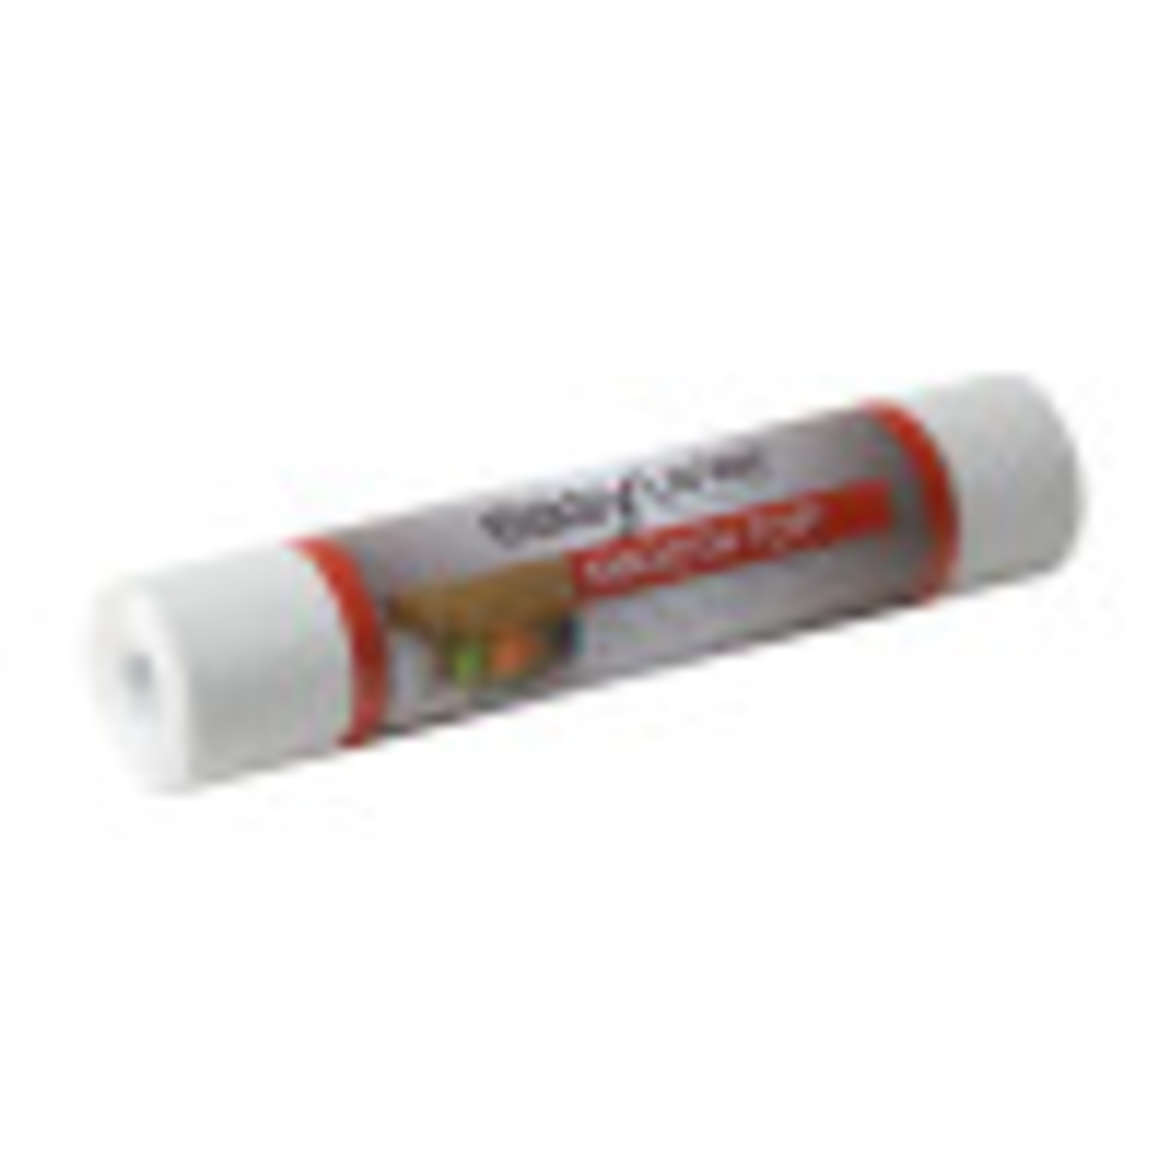 Smooth Top® Easy Liner® Brand Shelf Liner - White, 12 in. x 10 ft. Image